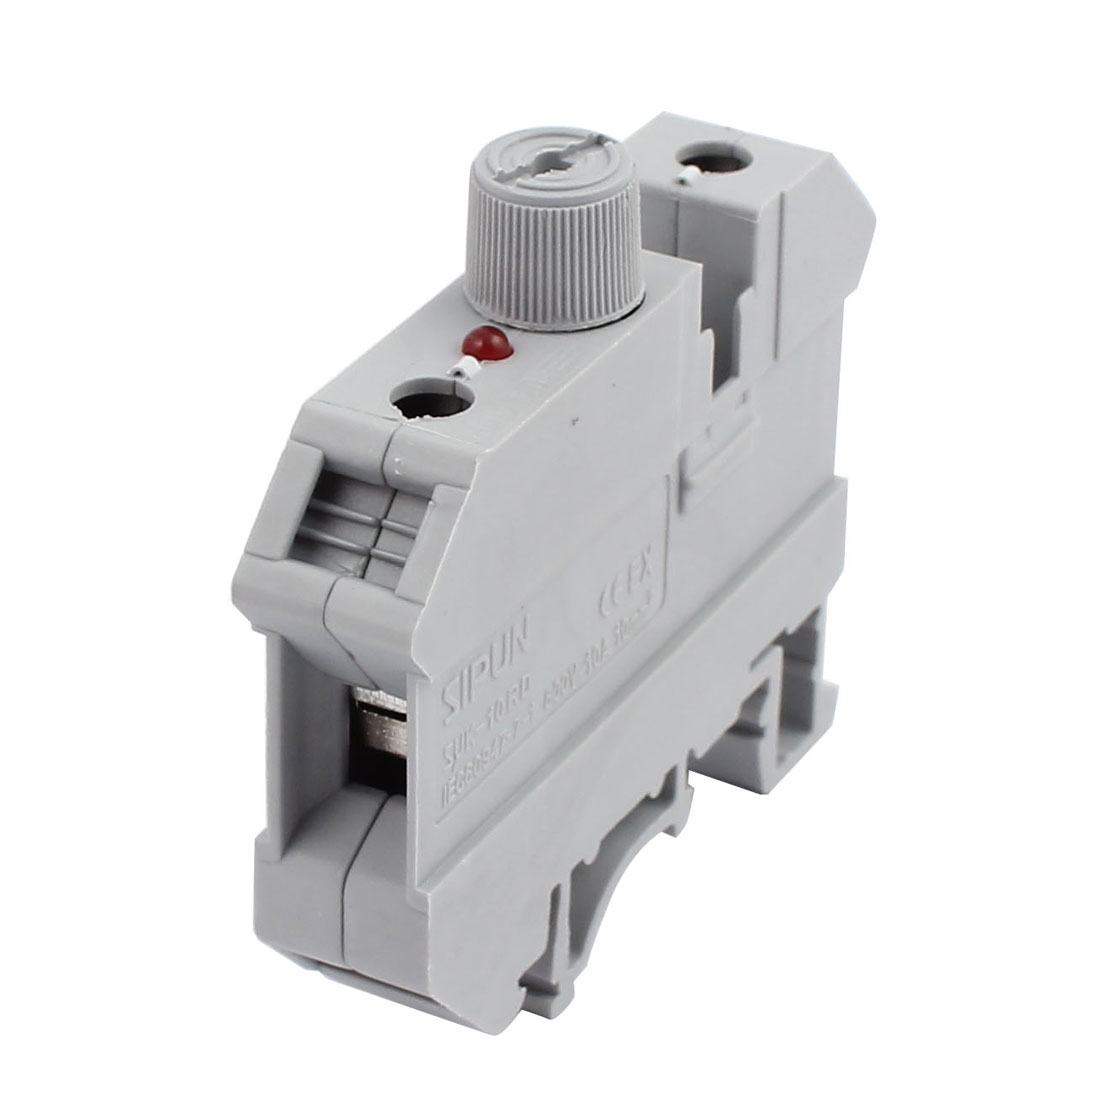 SUK-10RD 800V 10A Rail Mount 10mm2 Cable Fuse Type Terminal Blocks Gray